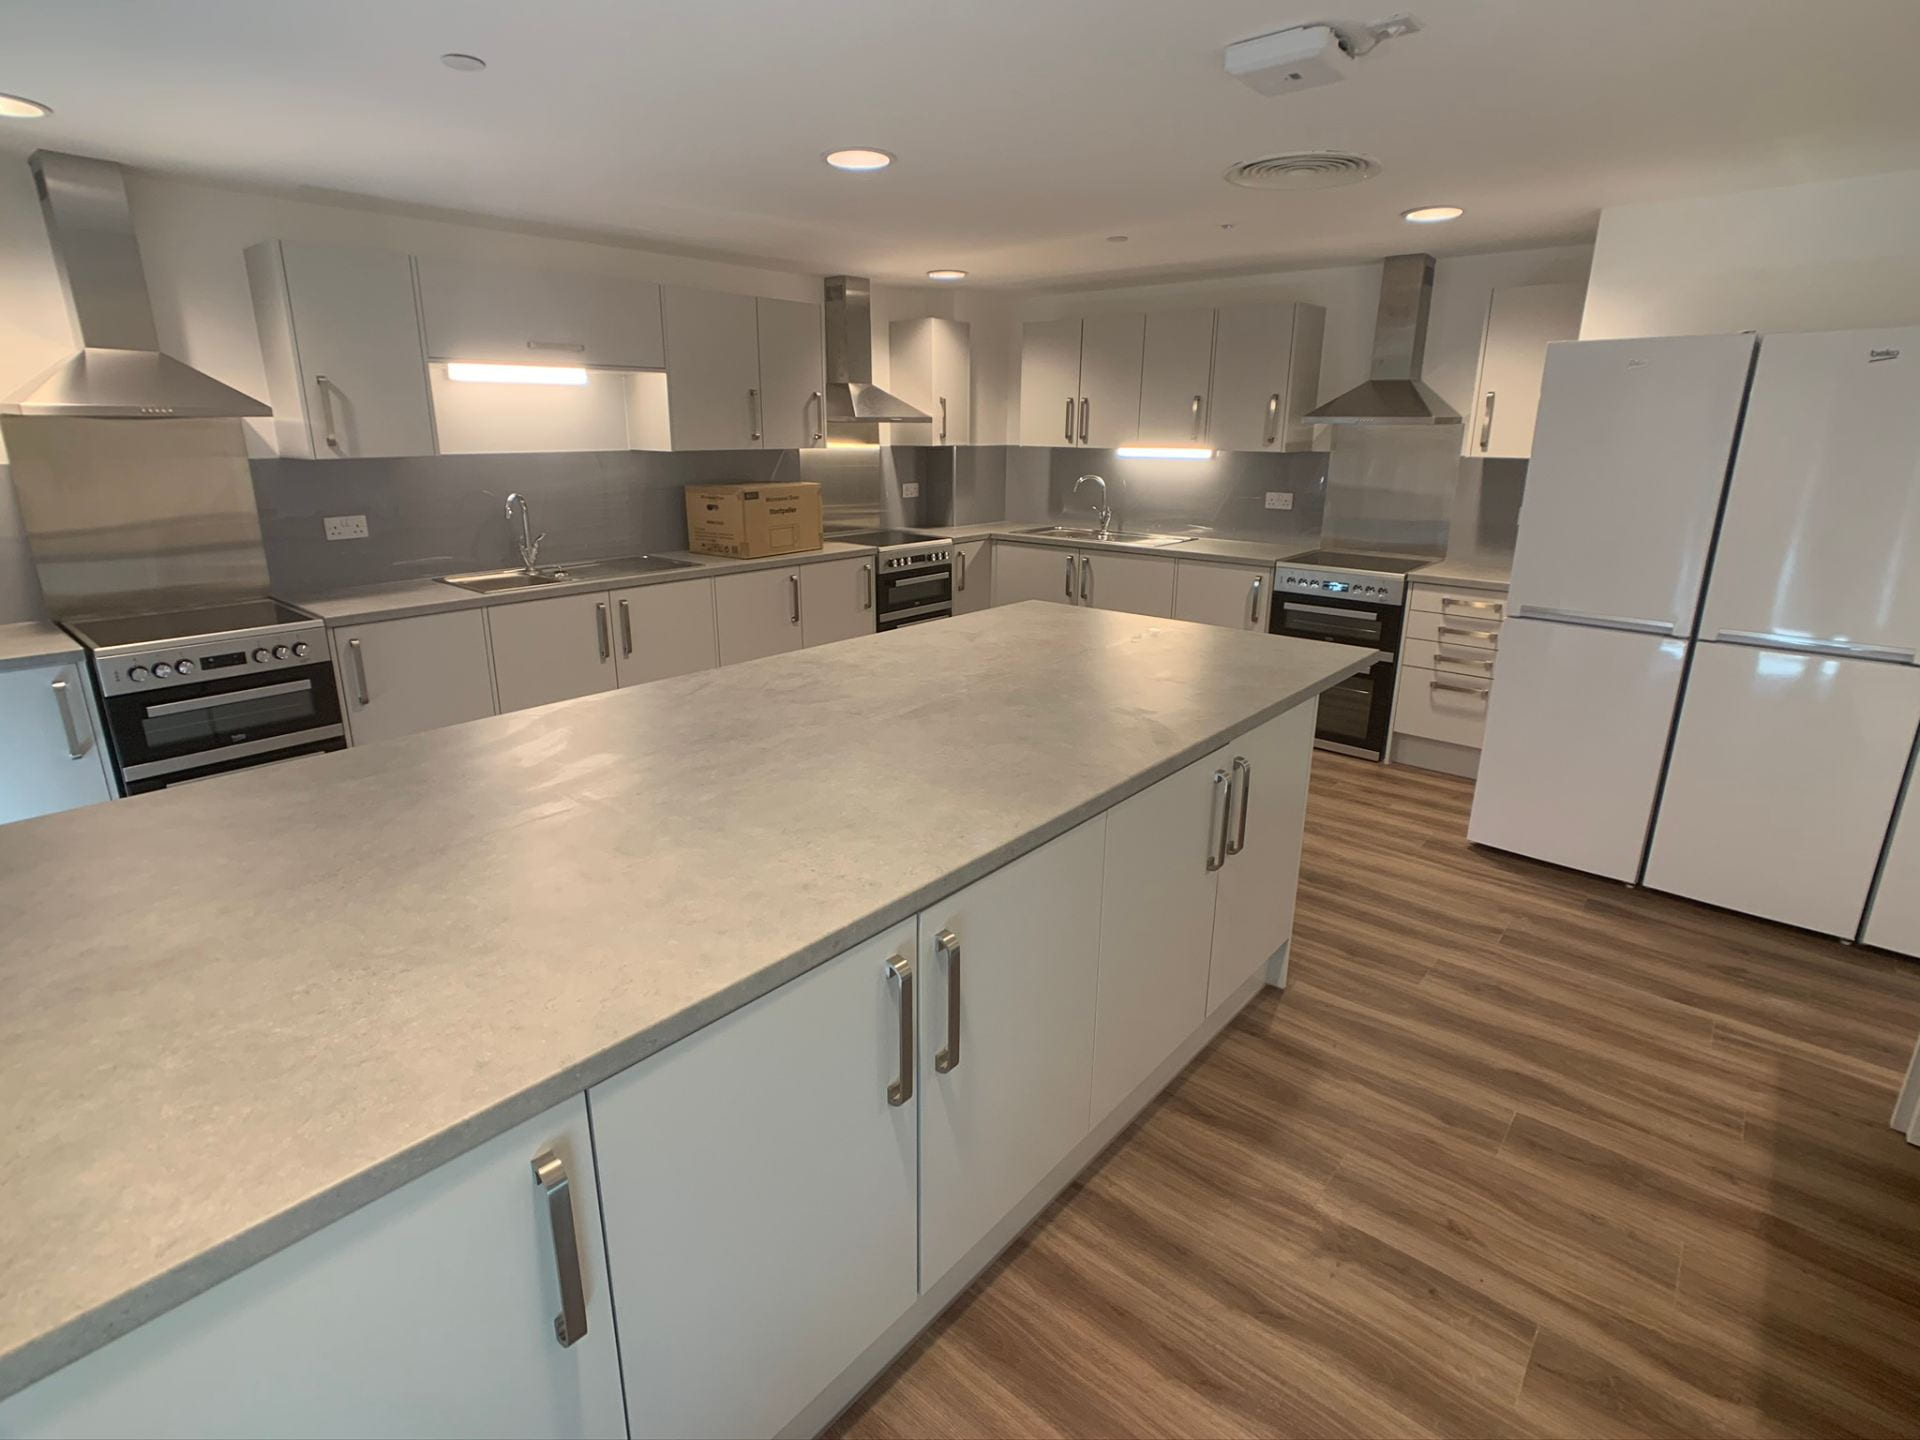 179 High Street new and unfurnished kitchen